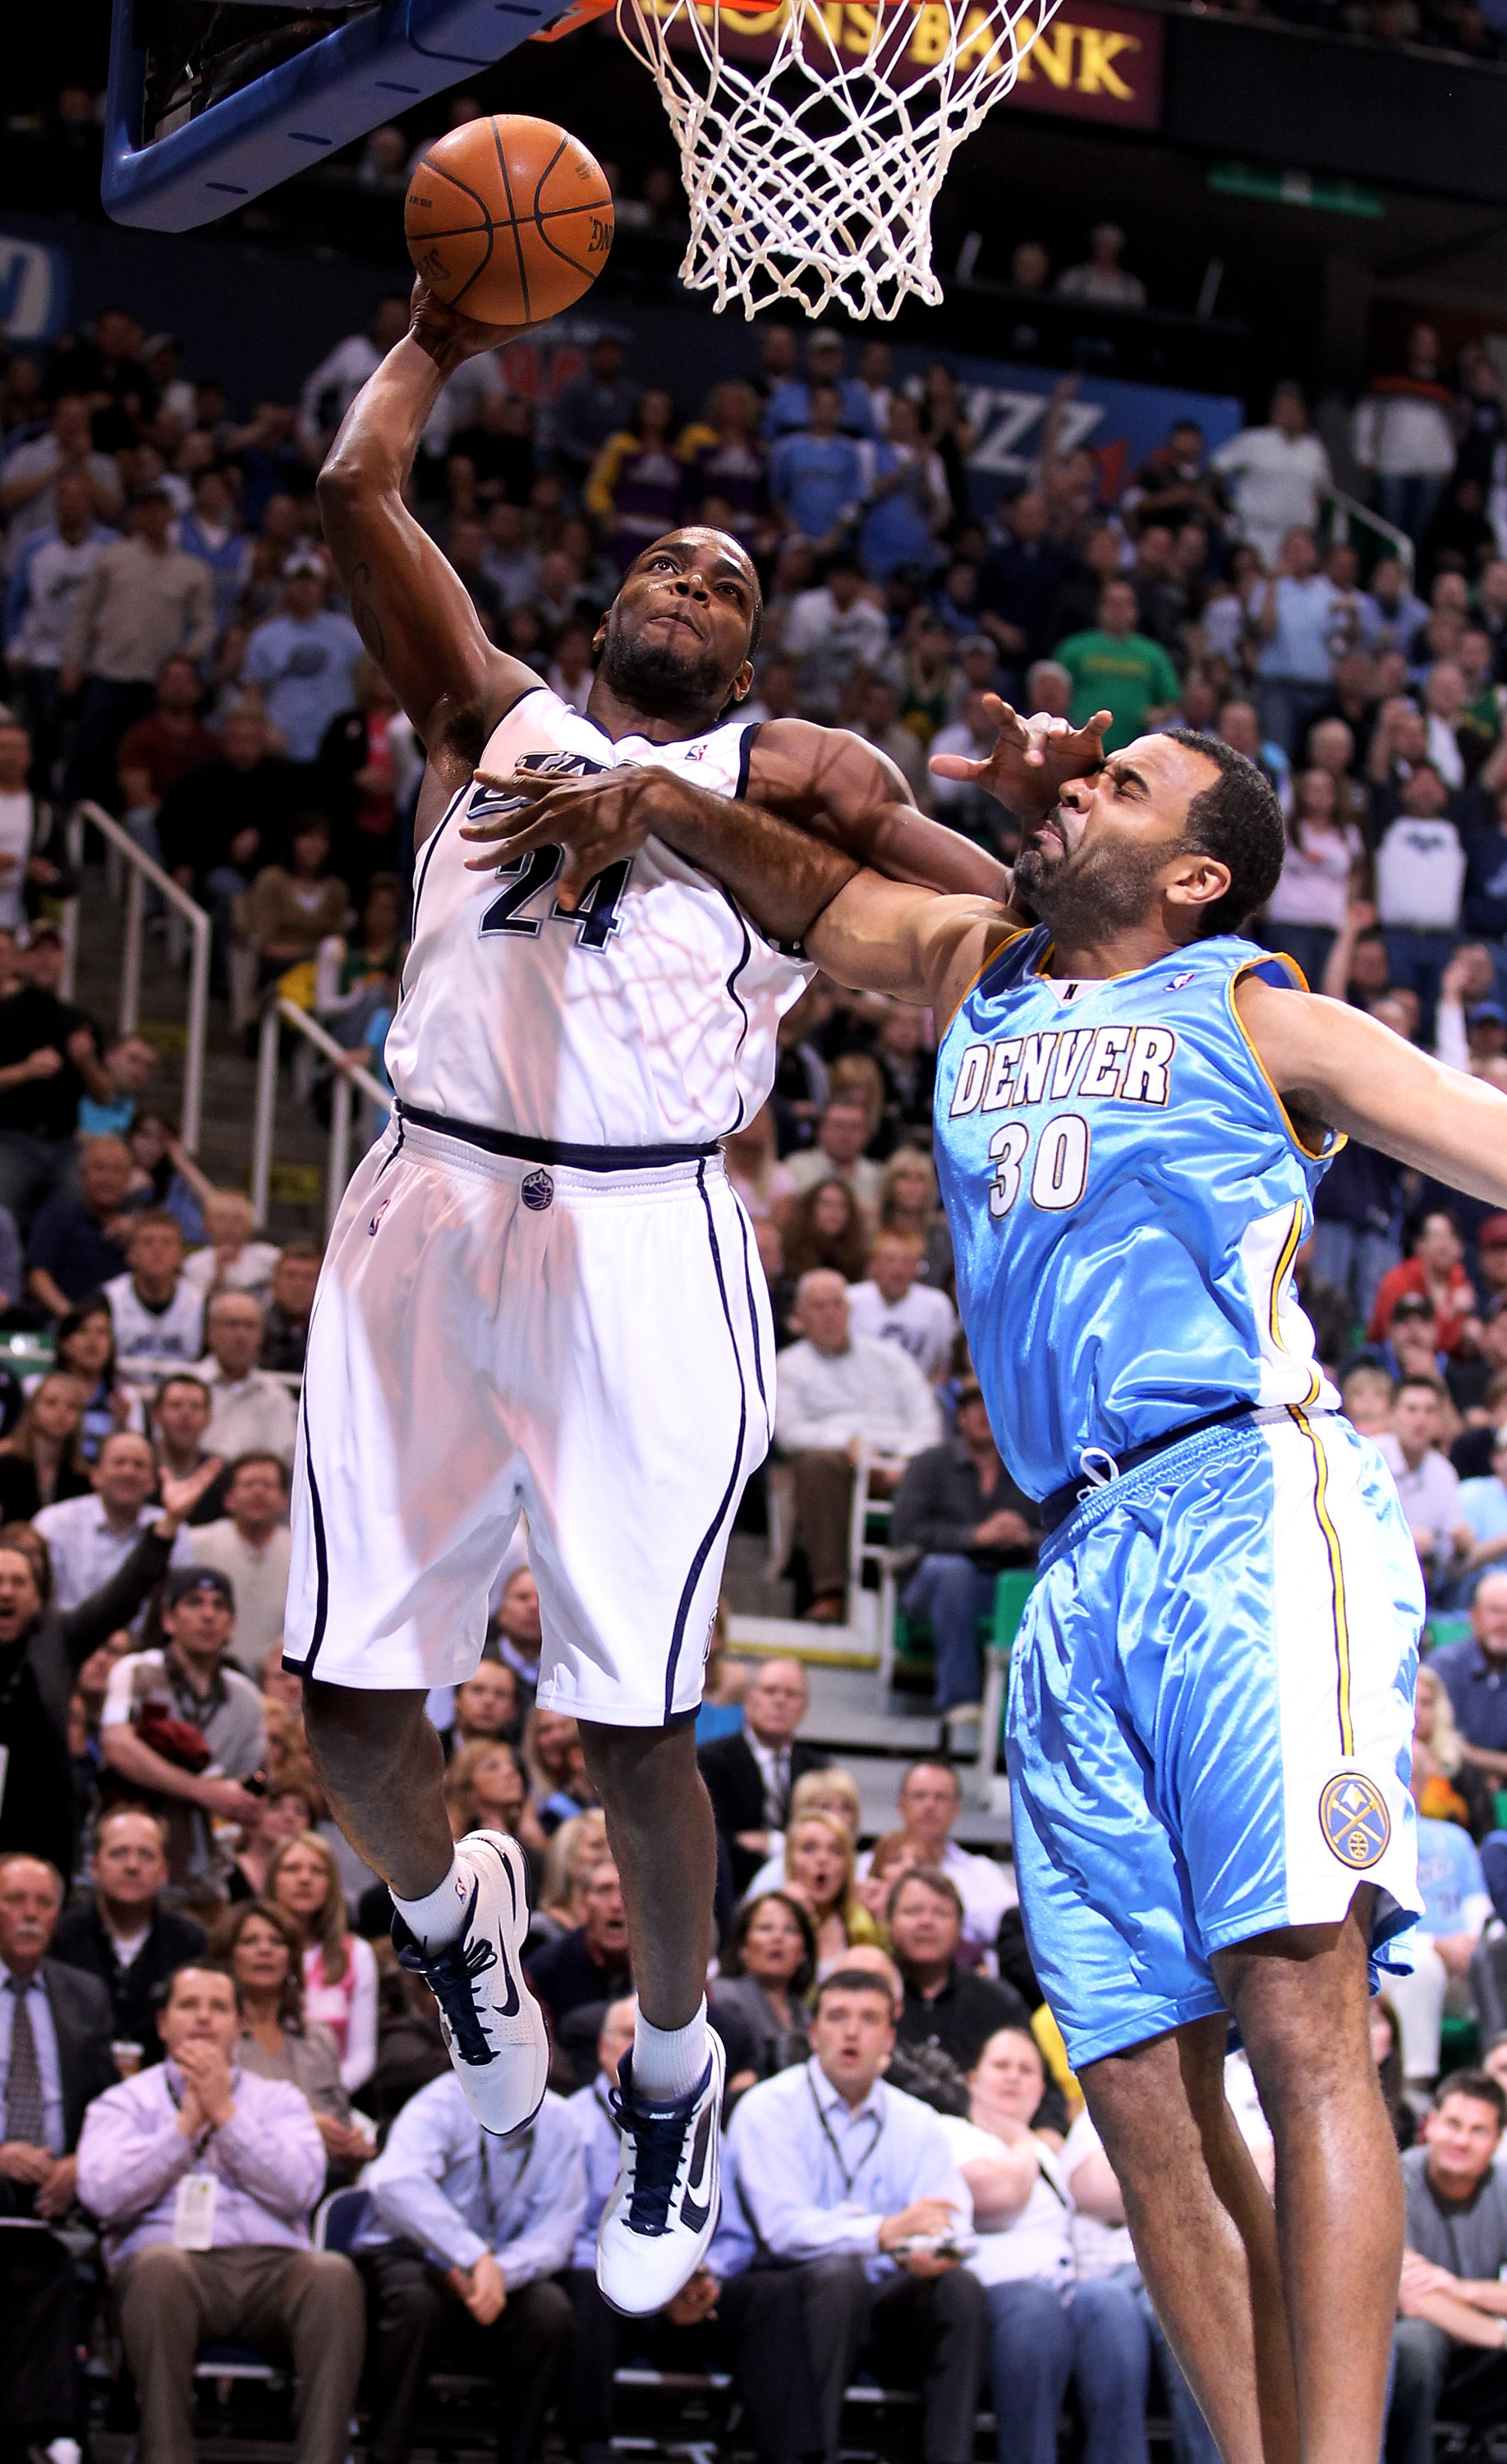 SALT LAKE CITY - APRIL 30:  Paul Millsap #24 of the Utah Jazz dunks over Malik Allen #30 of the Denver Nuggets during Game Six of the Western Conference Quarterfinals of the 2010 NBA Playoffs at EnergySolutions Arena on April 30, 2010 in Salt Lake City, U